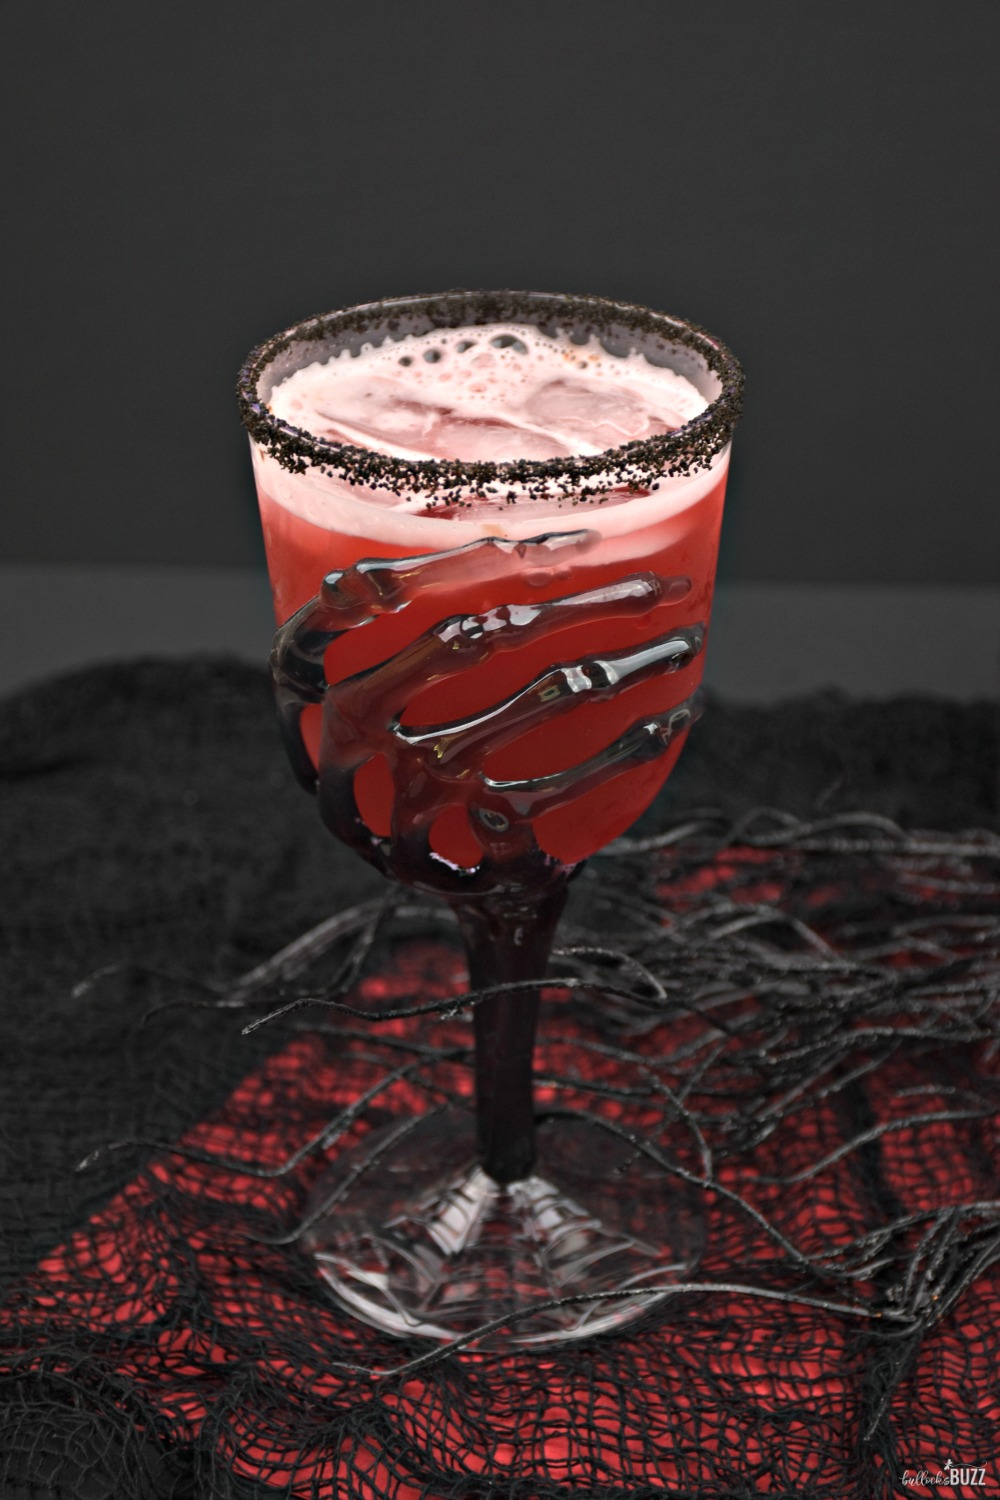 The Vampire's Kiss Halloween cocktail is sure to please both mortals and vampires alike with its fruity taste and spooktacular color!